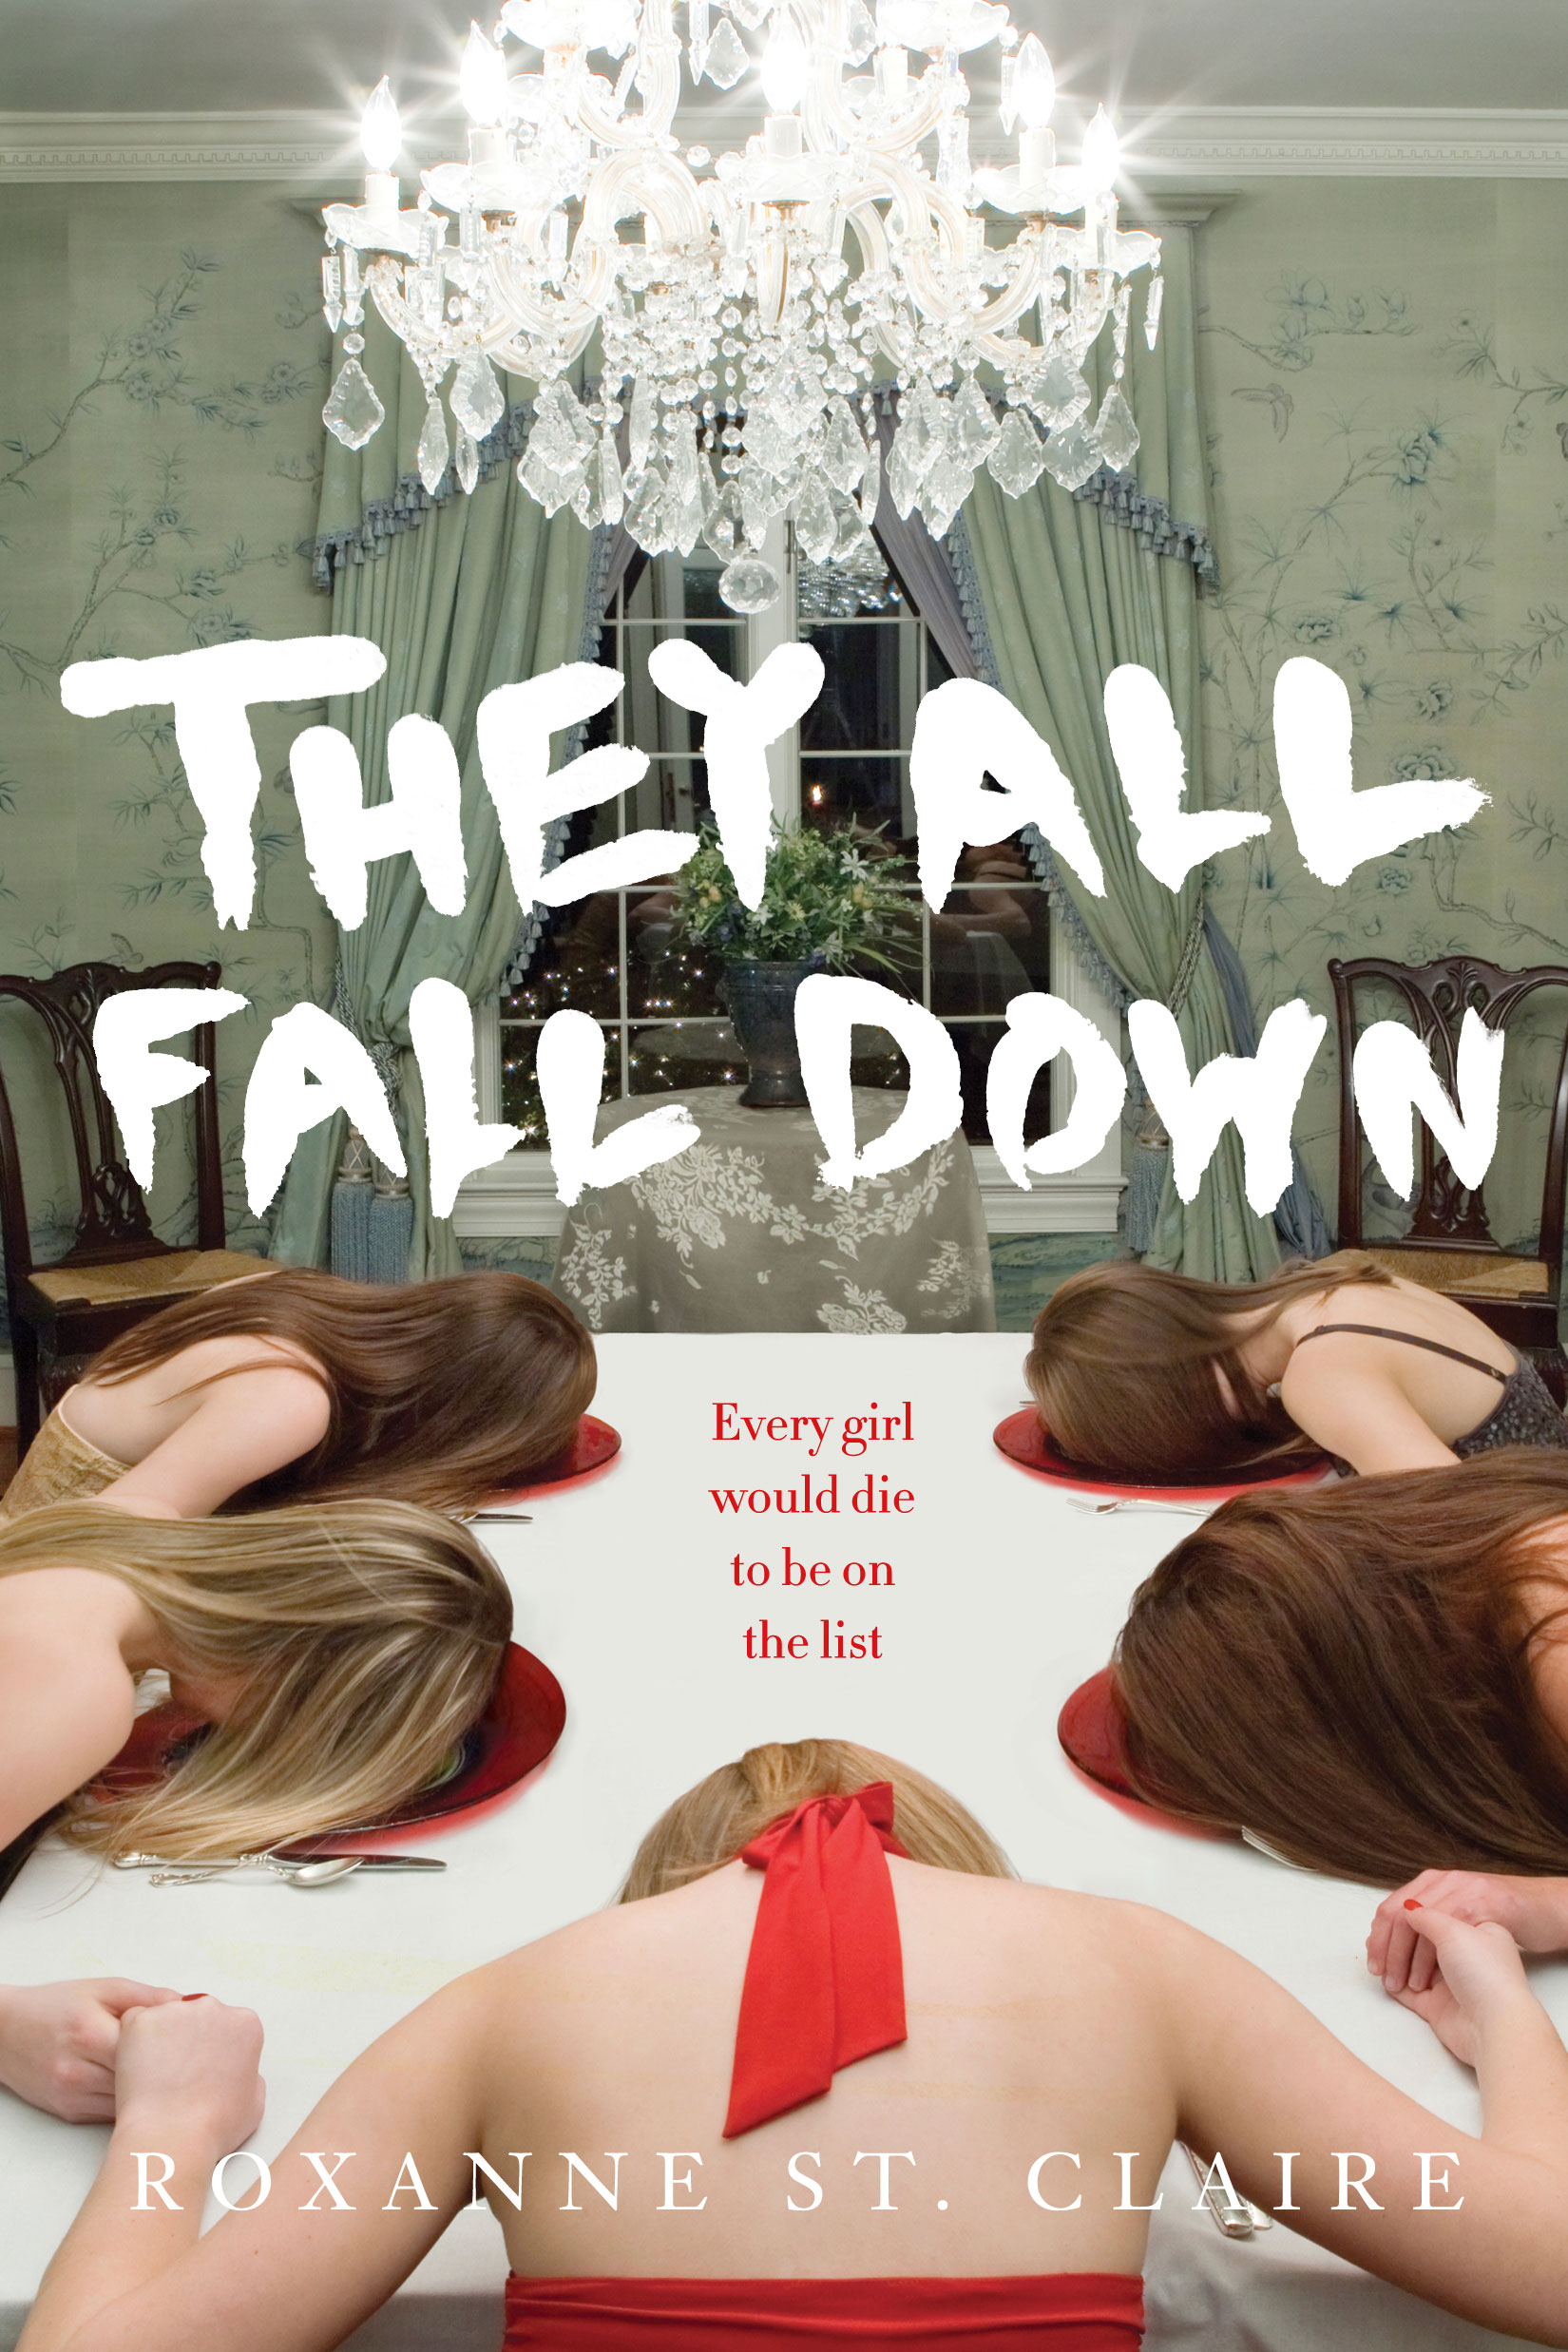 They All Fall Down by Roxanne St. Claire Designed by Ben Mautner for Knopf Art Directed by Alison Impey